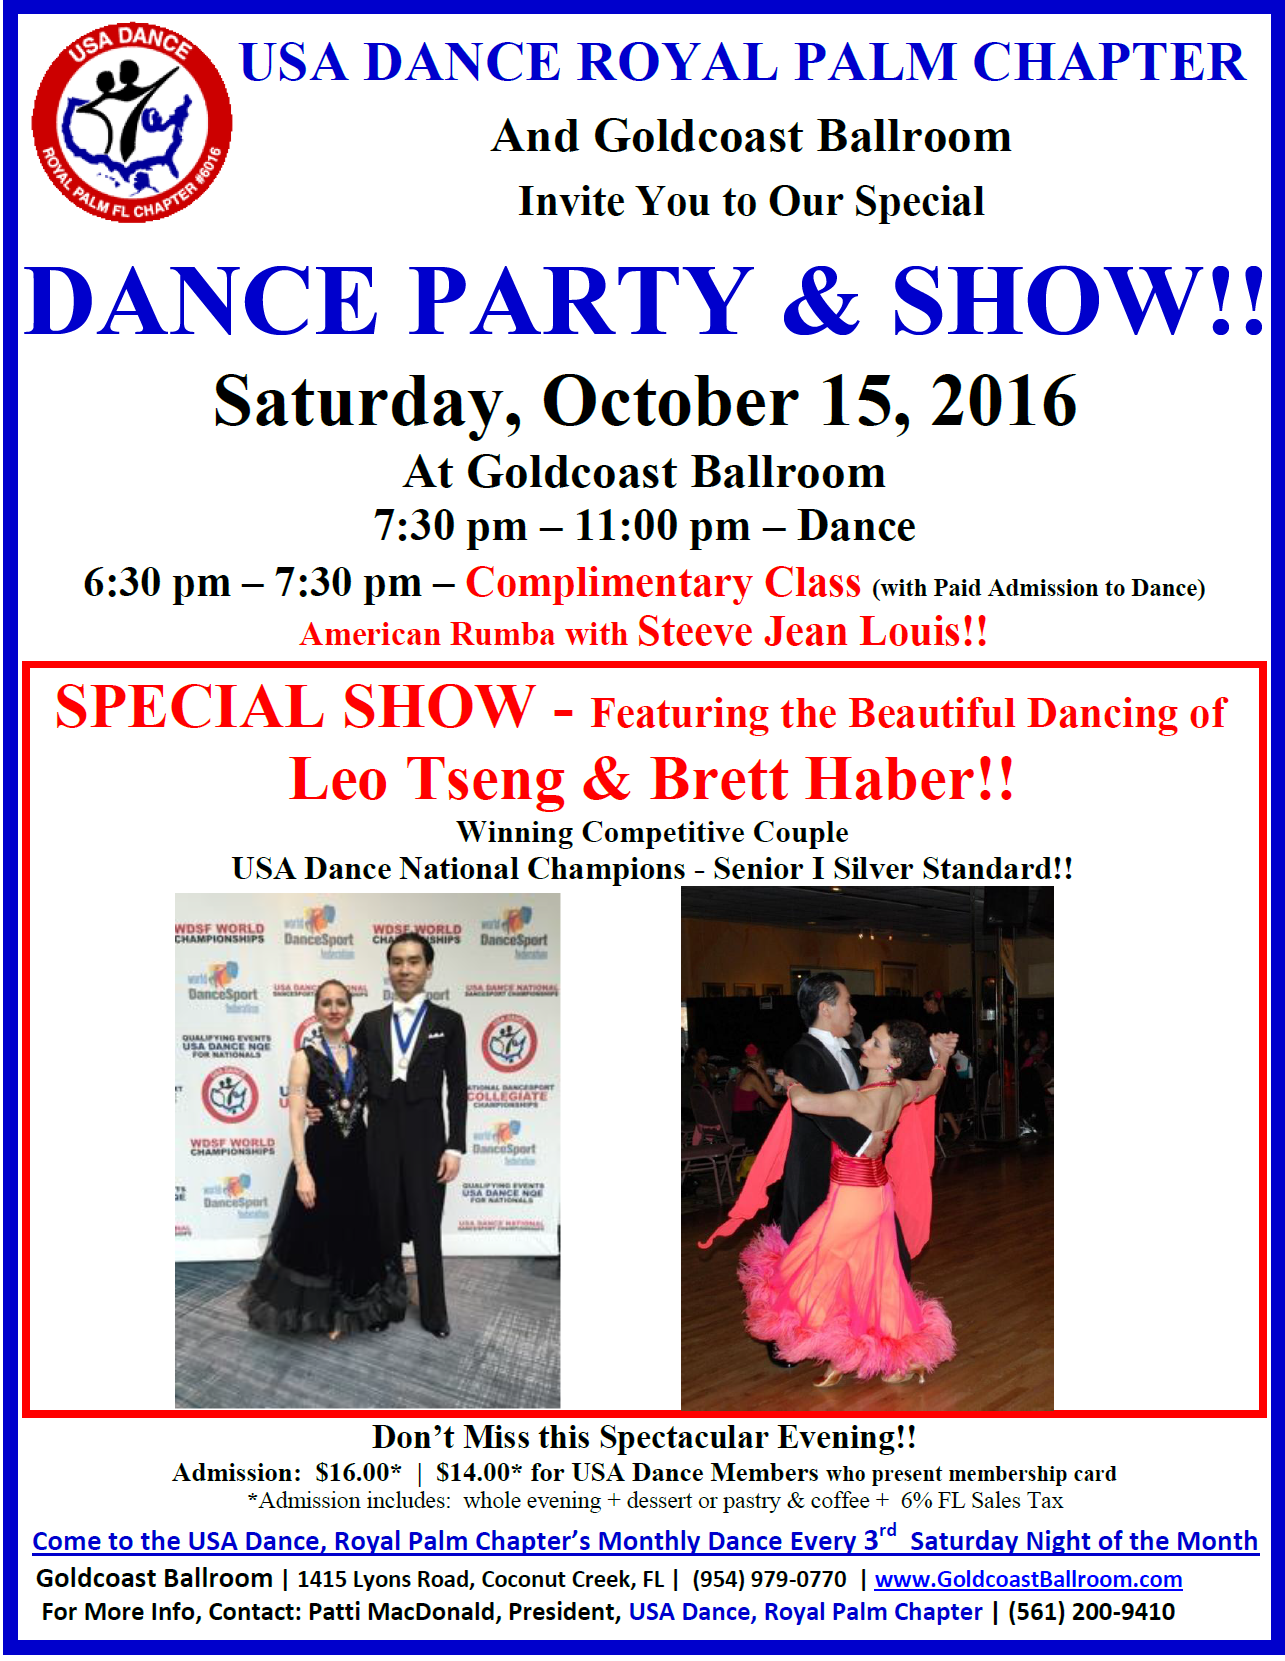 Click to Print Flyer: October 15, 2016 - USA Dance Party & Show - Featuring USA Dance National Champions Leo Tseng & Brett Haber